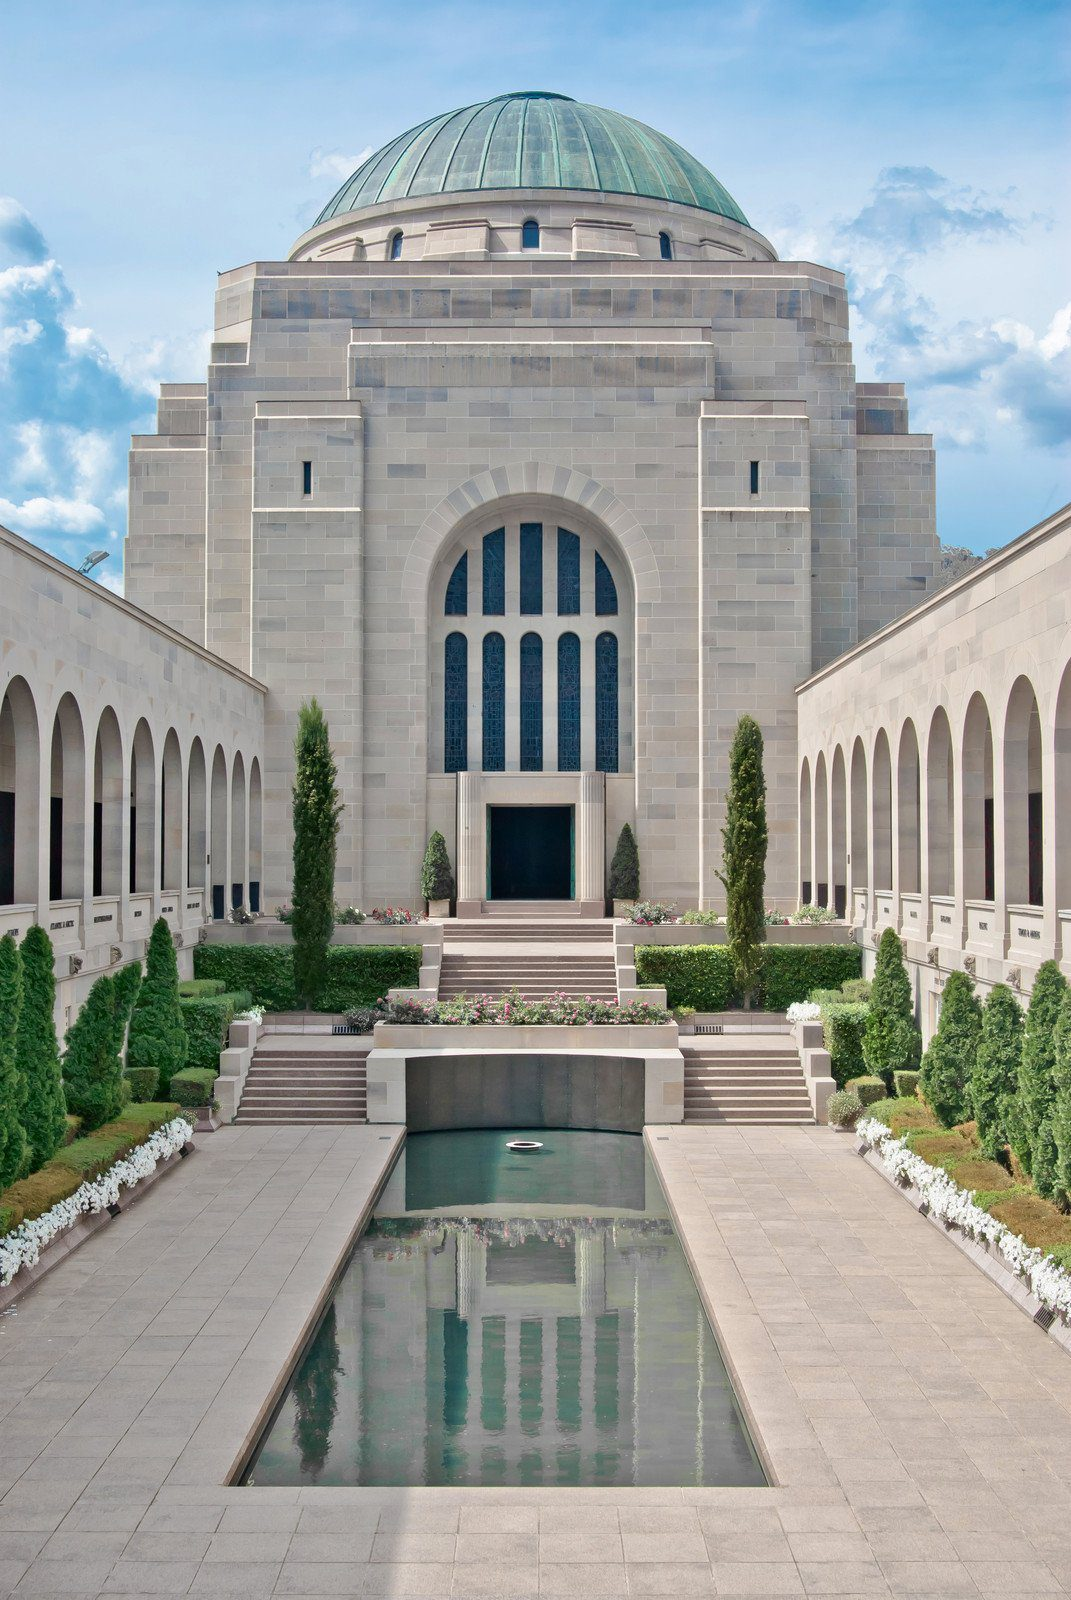 The Australian War Memorial in Canberra, Australia